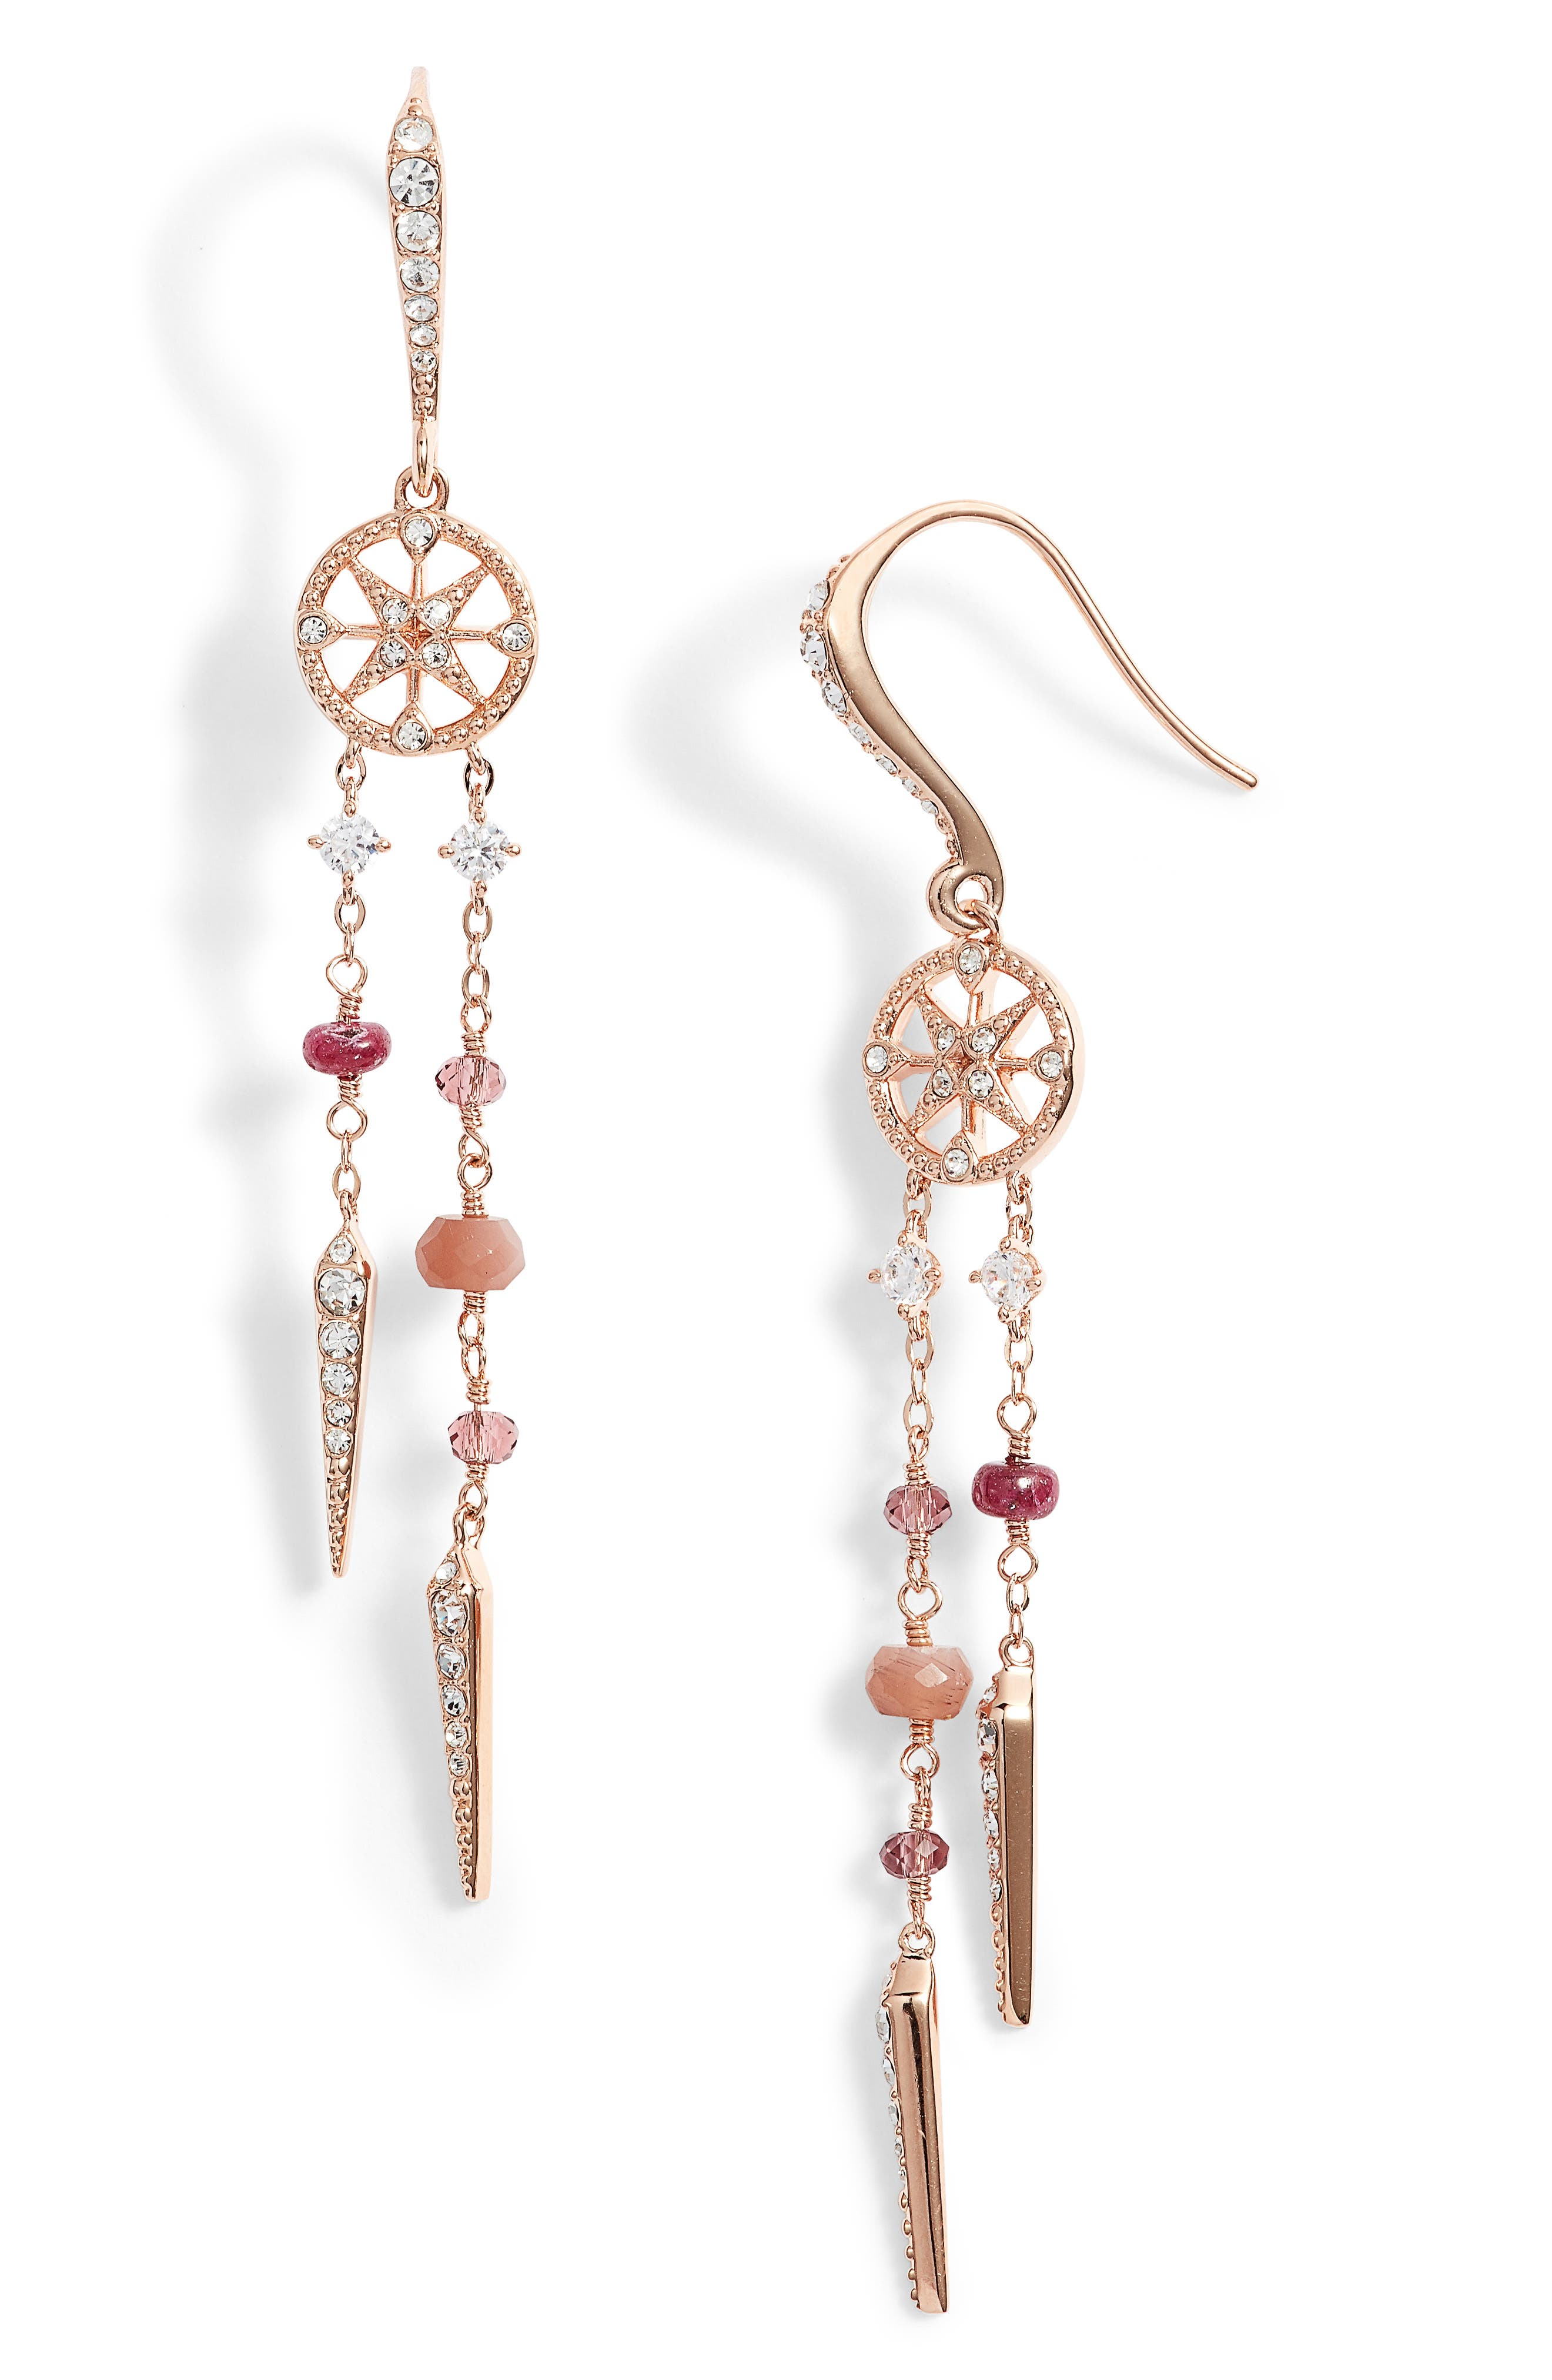 Crystal & Semiprecious Stone Drop Earrings,                         Main,                         color, Ruby/ Choco/ Pink